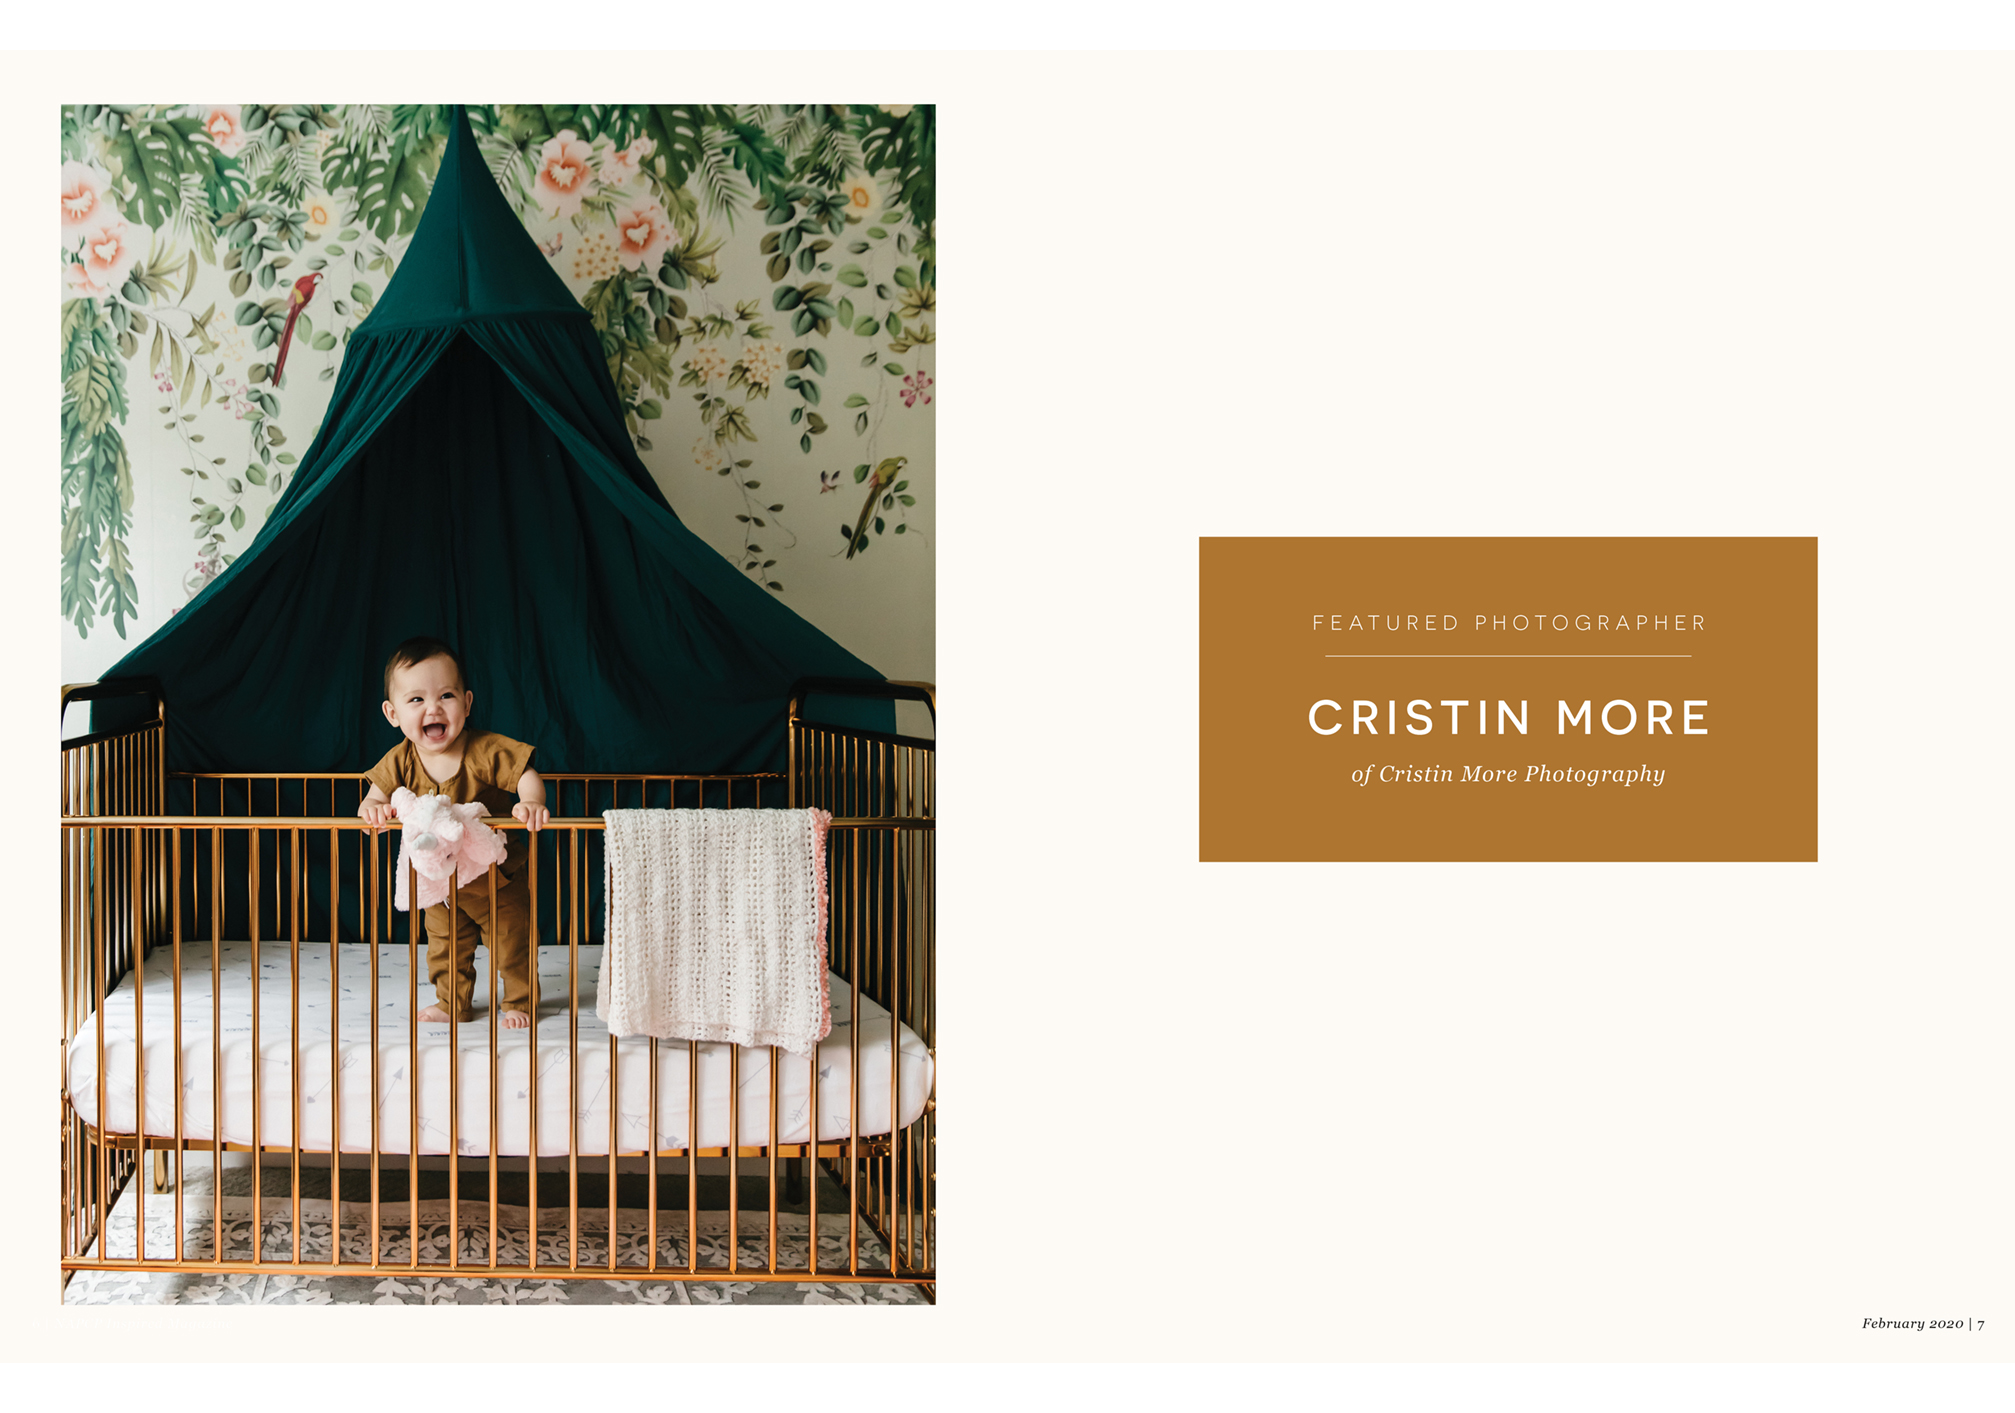 jungle wallpaper, crib canopy, smiling baby, standing baby, copper crib, Featured Photographer, Cristin More, Cristin More Photography